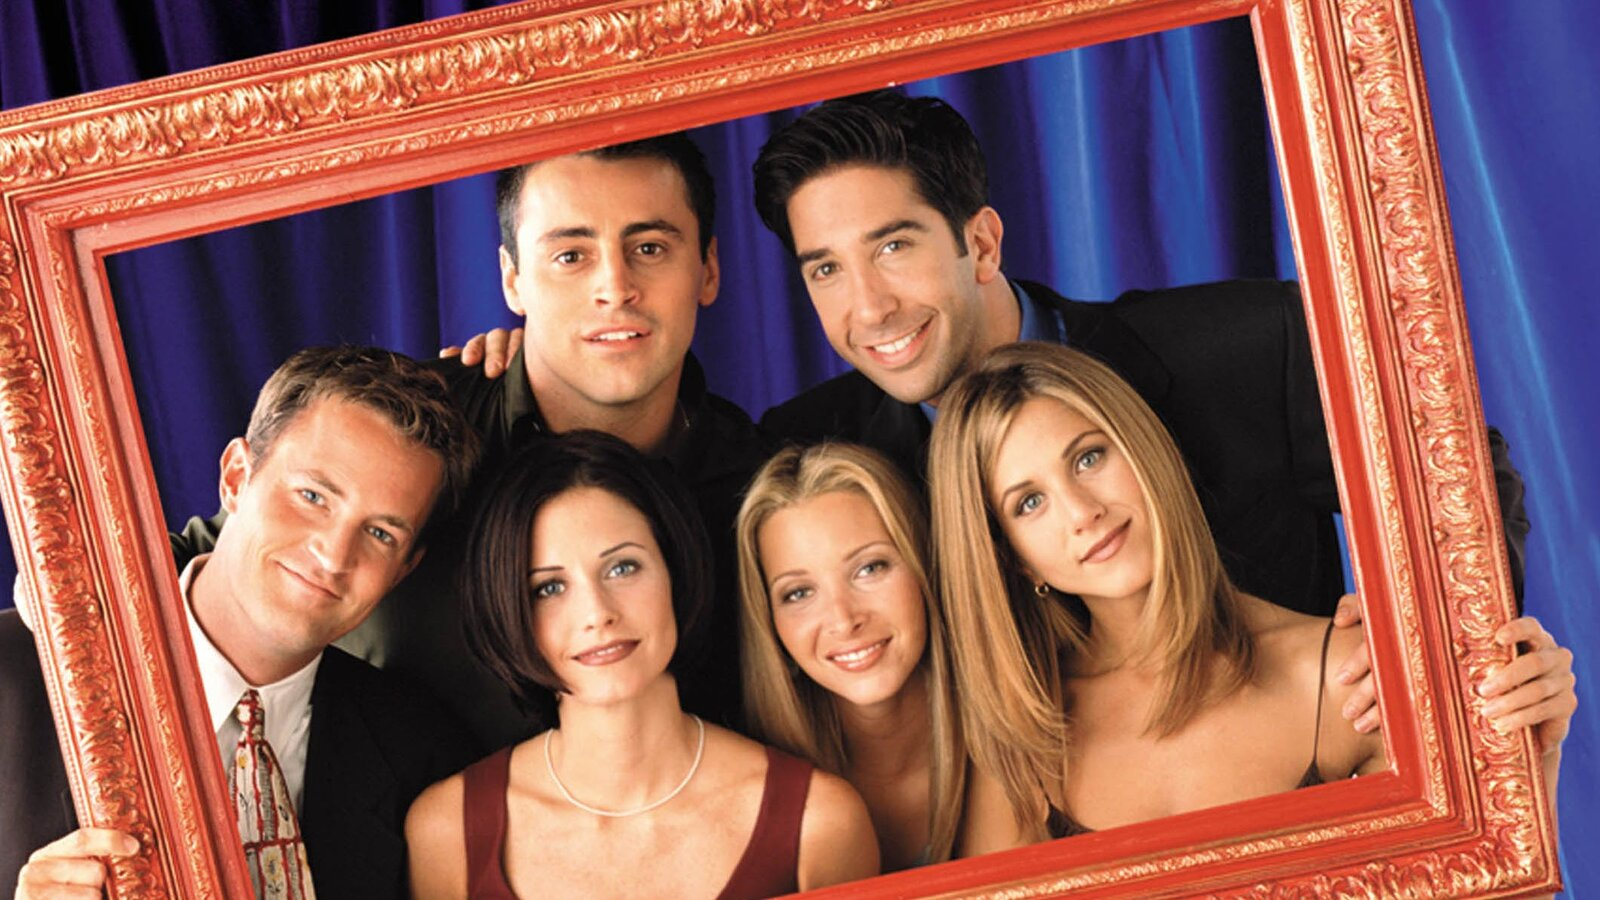 The iconic NBC sitcom 'Friends' has been teasing an HBO Max reunion for months now, but it looks like it's finally making its way into production.